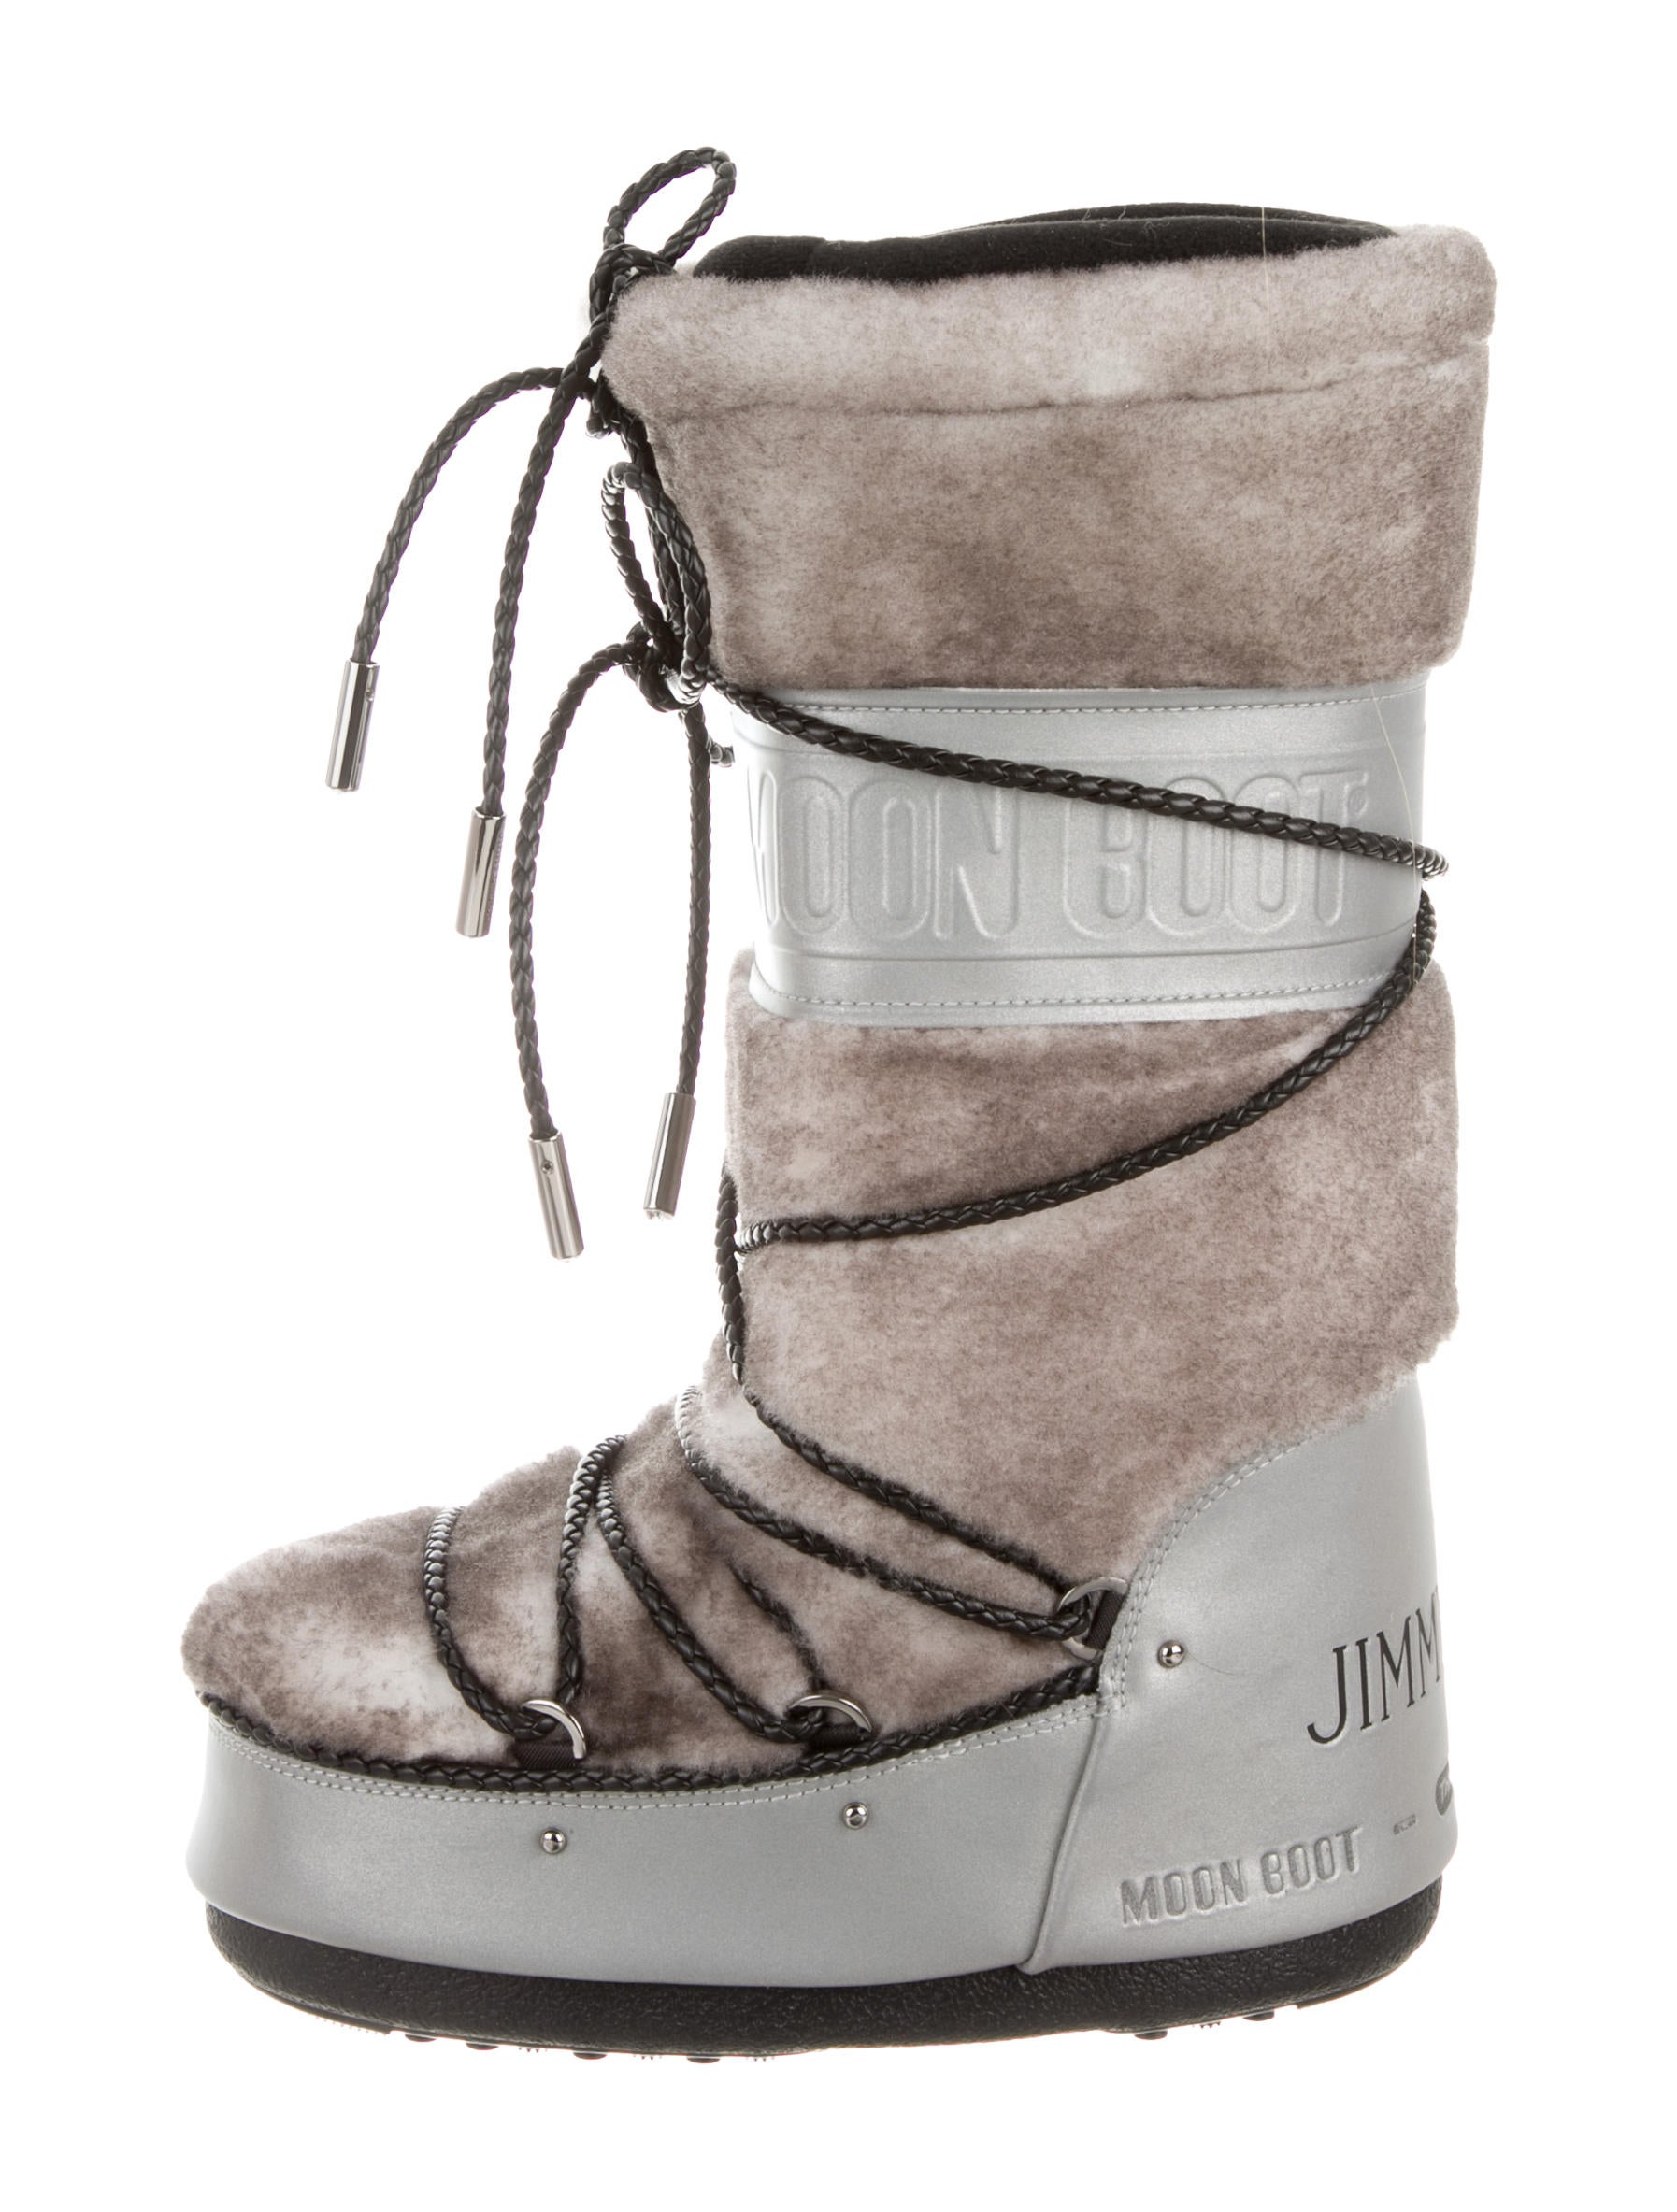 Jimmy Choo Moon Boots w/ Tags - Shoes - JIM38171 | The ...